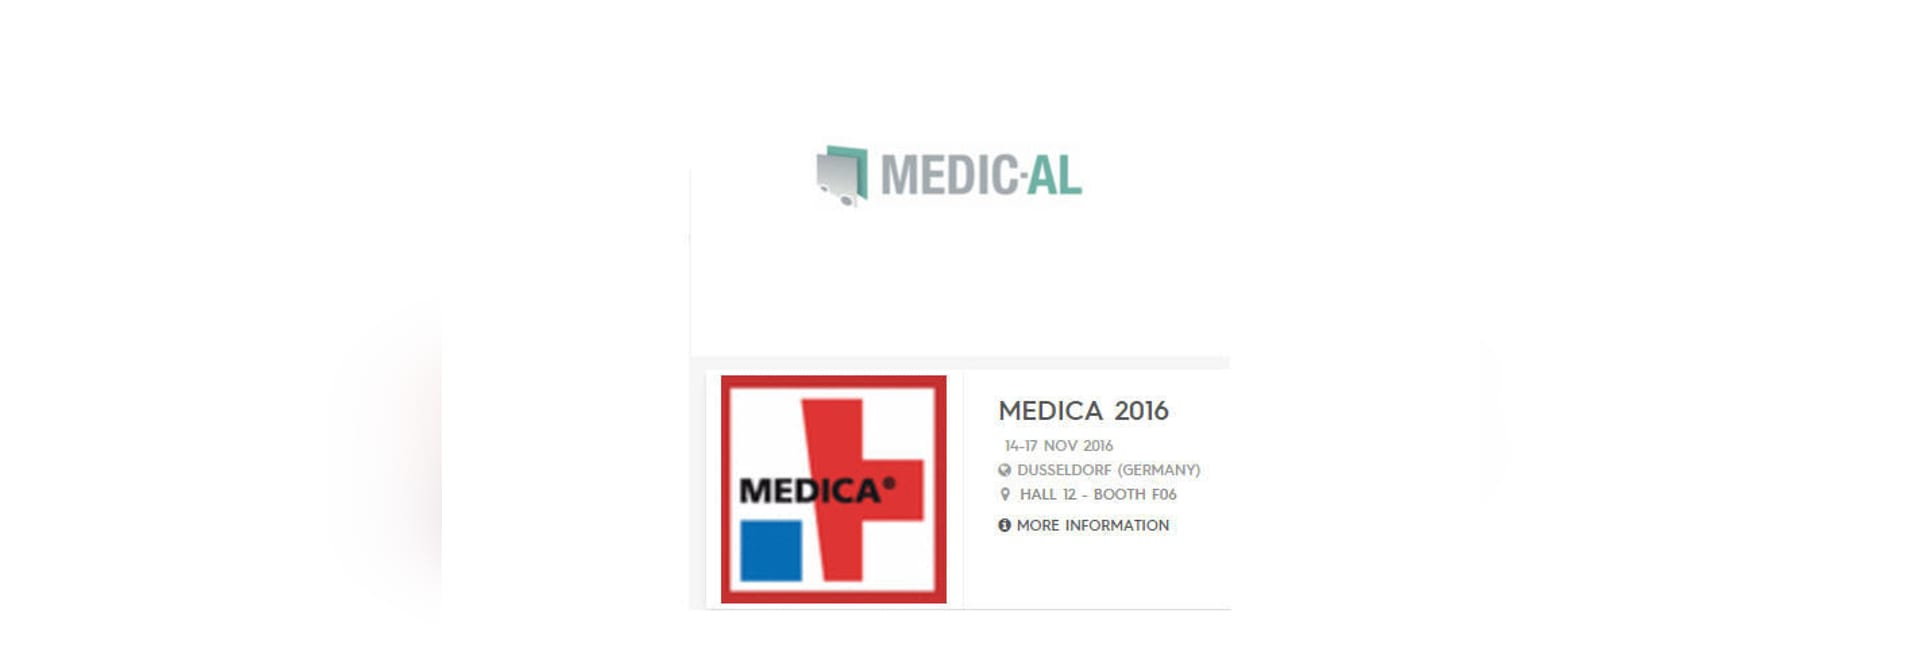 MEDIC-AL is exhibiting on MEDICA in hall 12 / booth F06